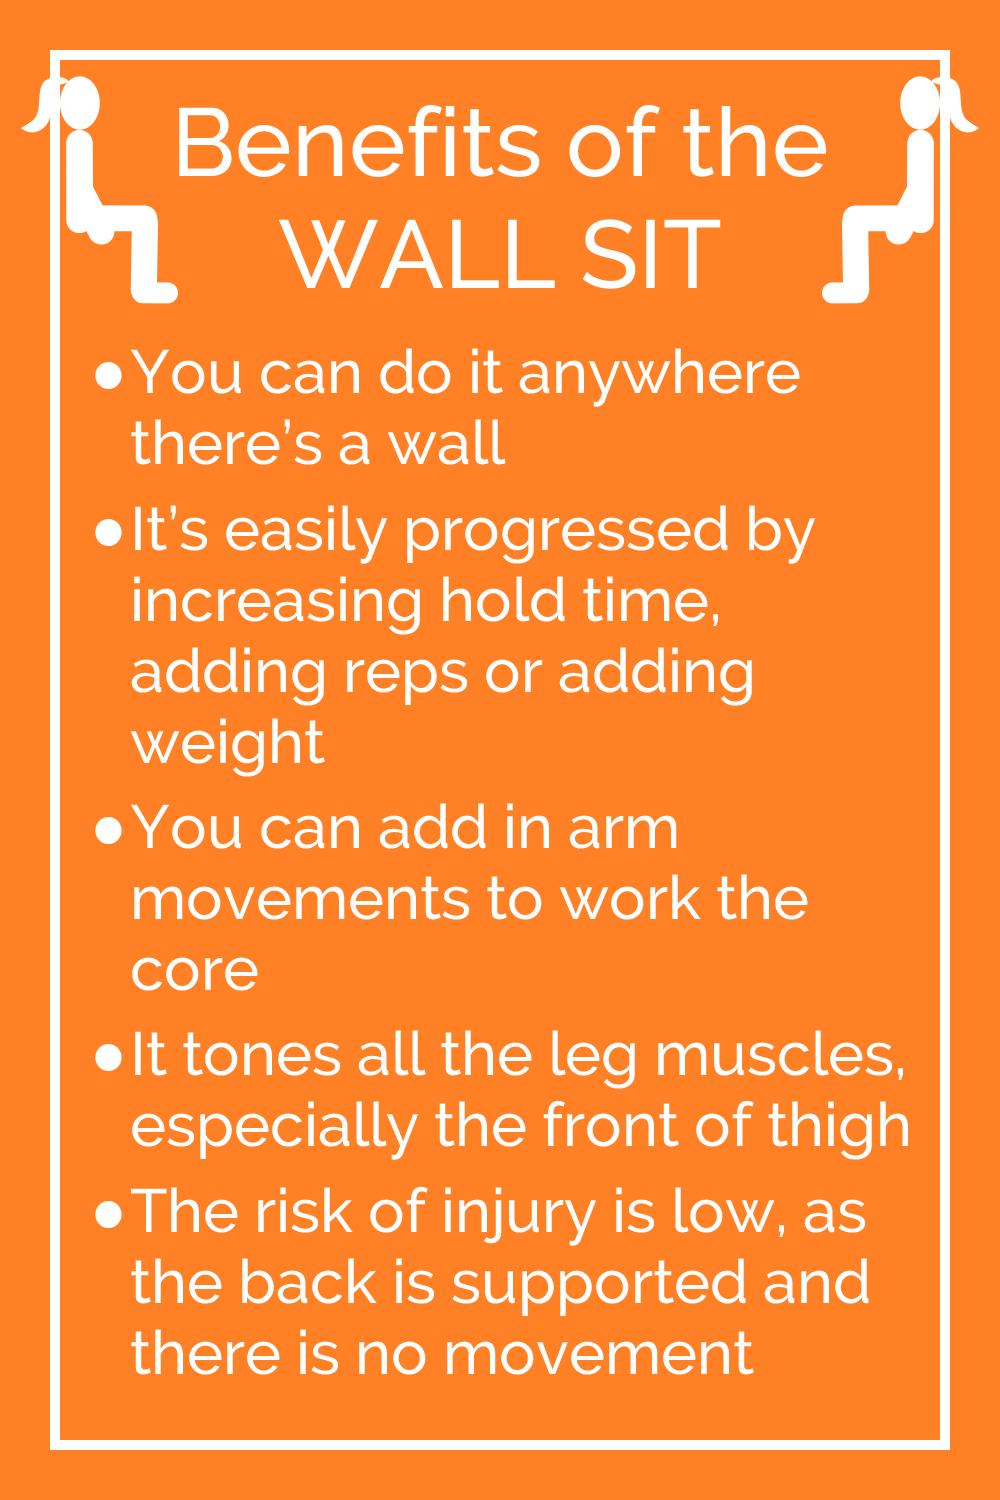 Benefits of the wall sit exercise